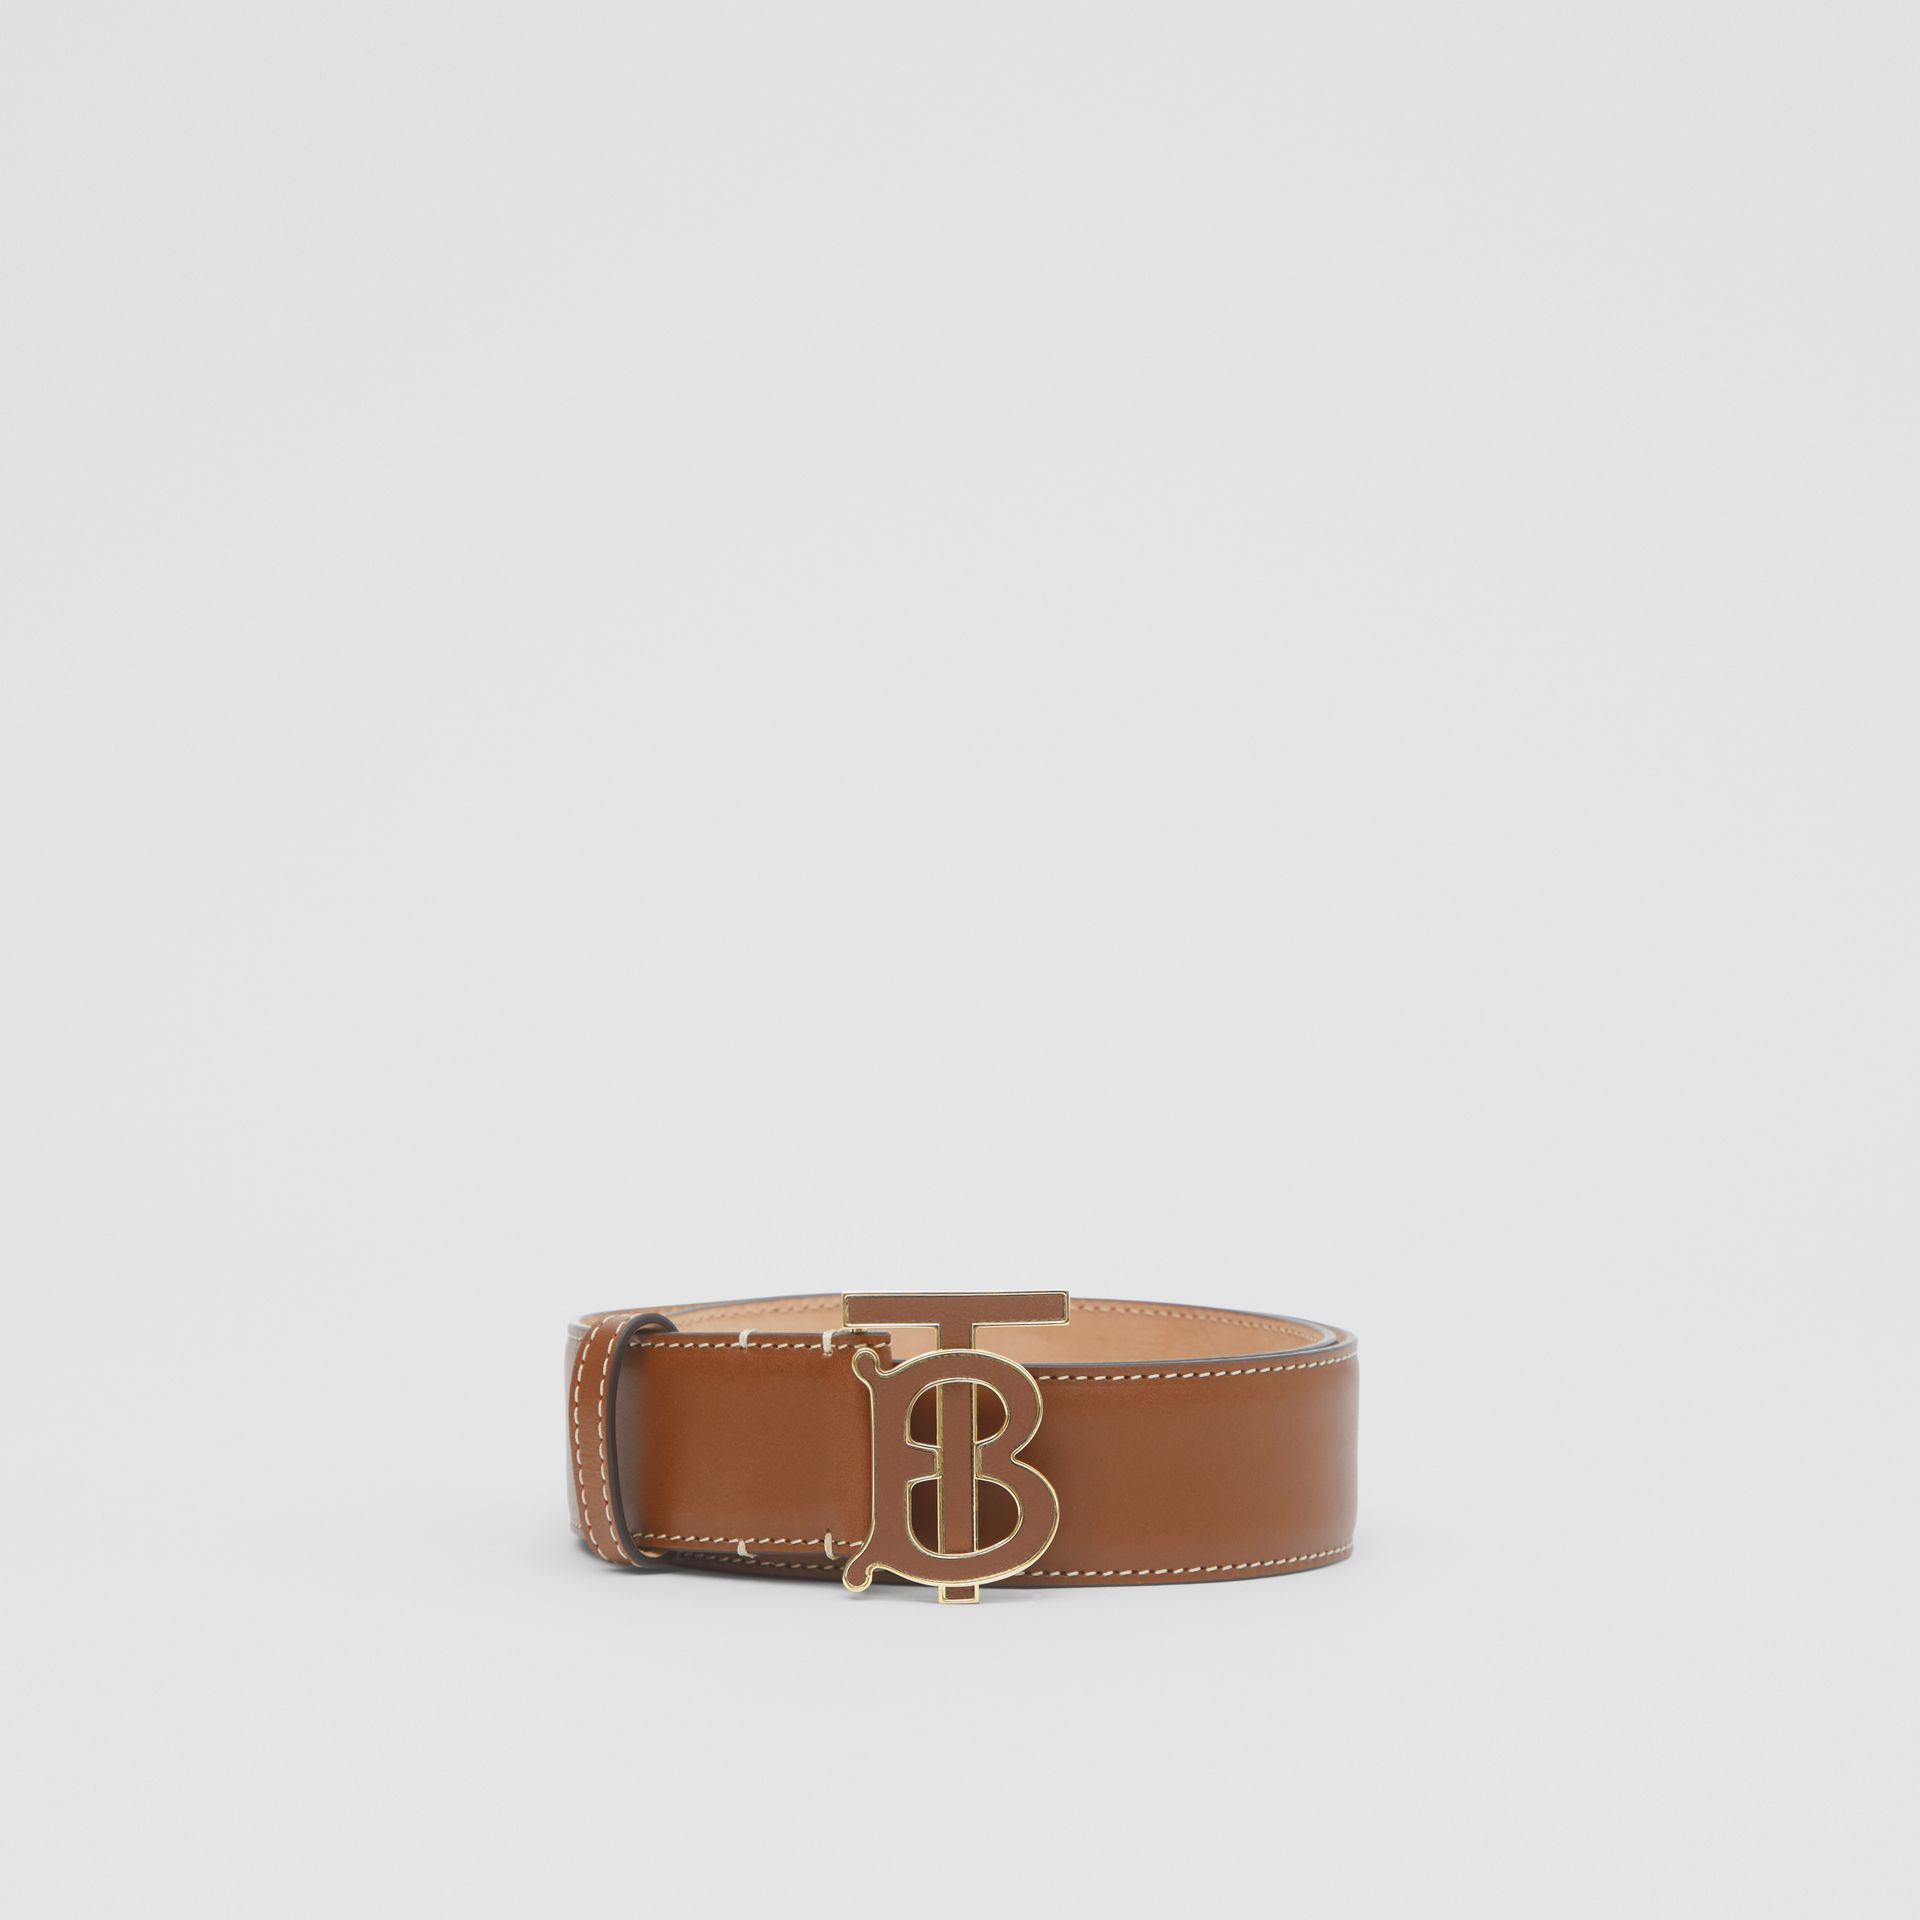 Monogram Motif Leather Belt in Tan - Women | Burberry Canada - gallery image 3